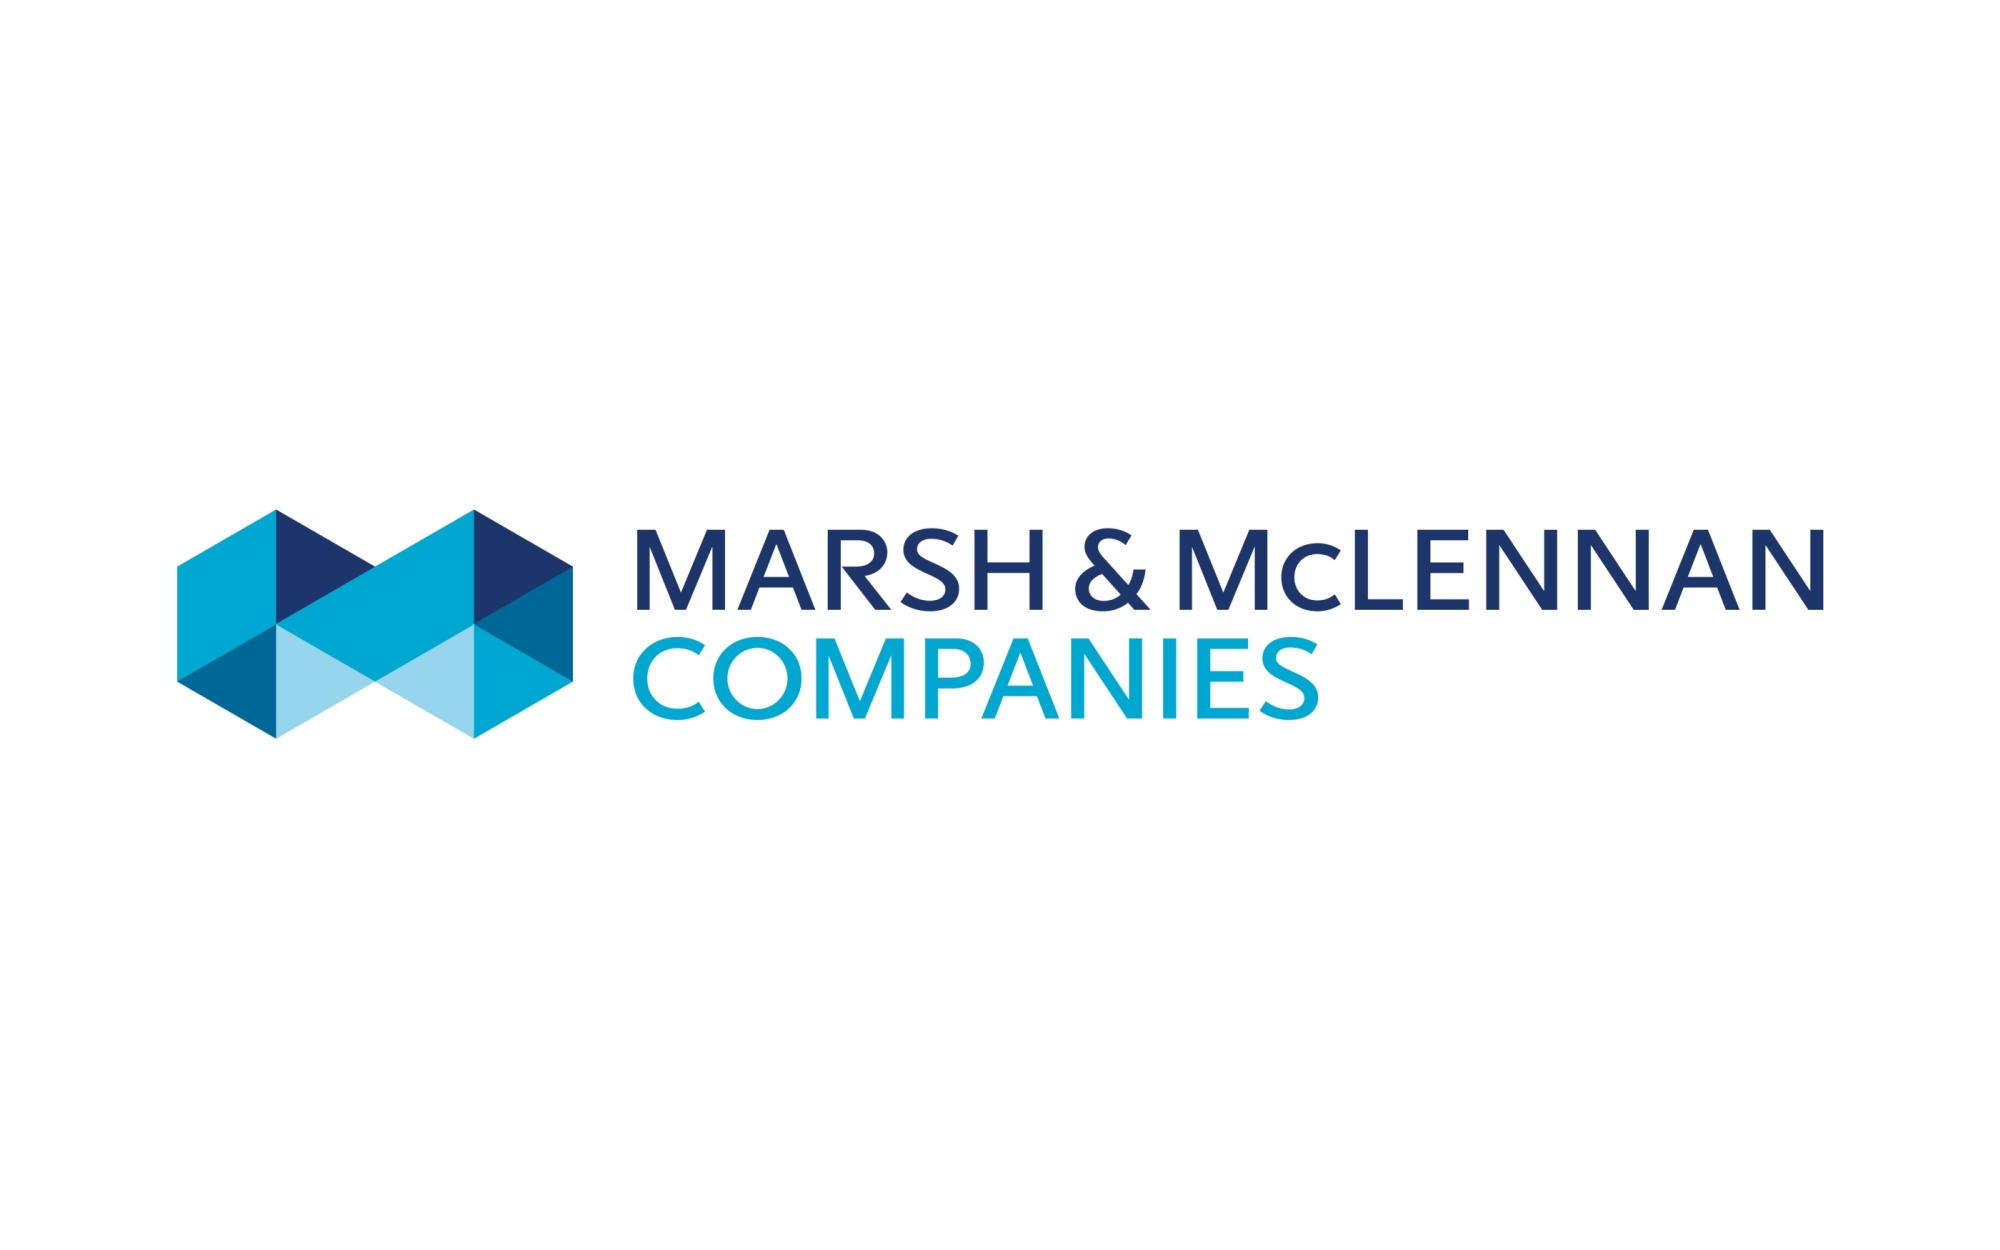 Marsh & McLennan rileva JLT Group